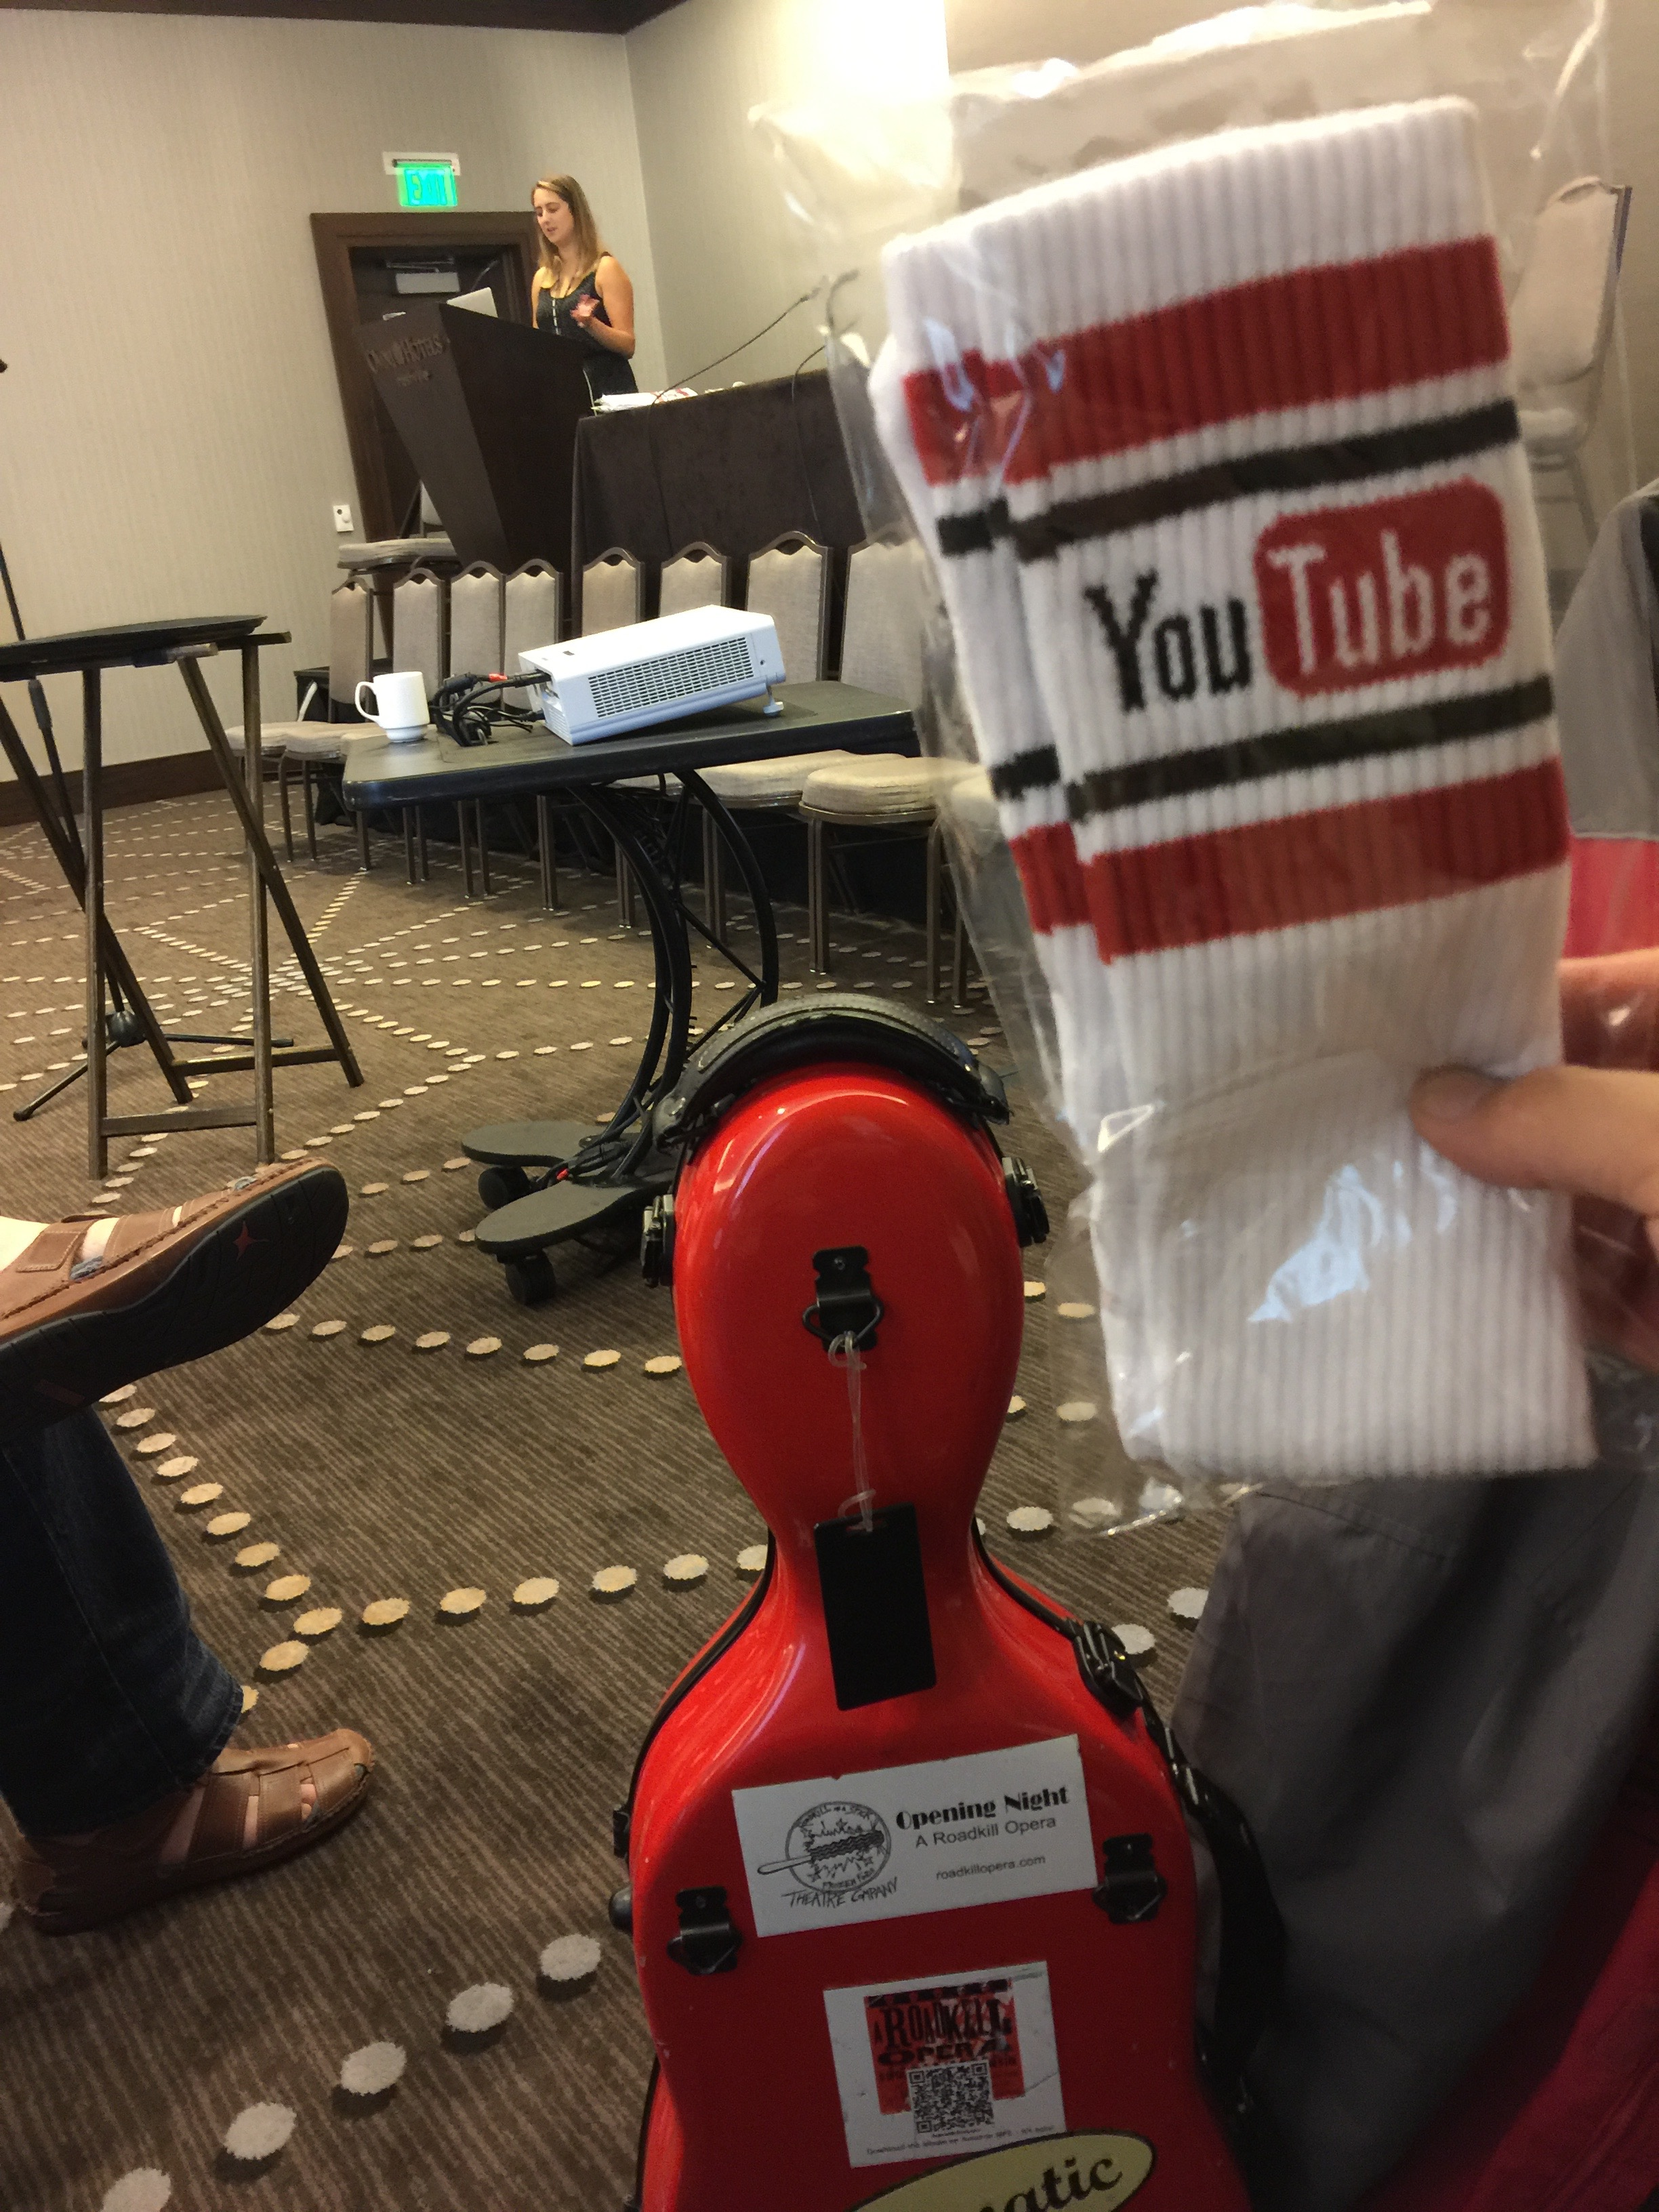 Photo of YouTube swag--tube socks at CD Baby's DIY Musicians Conference 2017 in Nashville, Tennessee